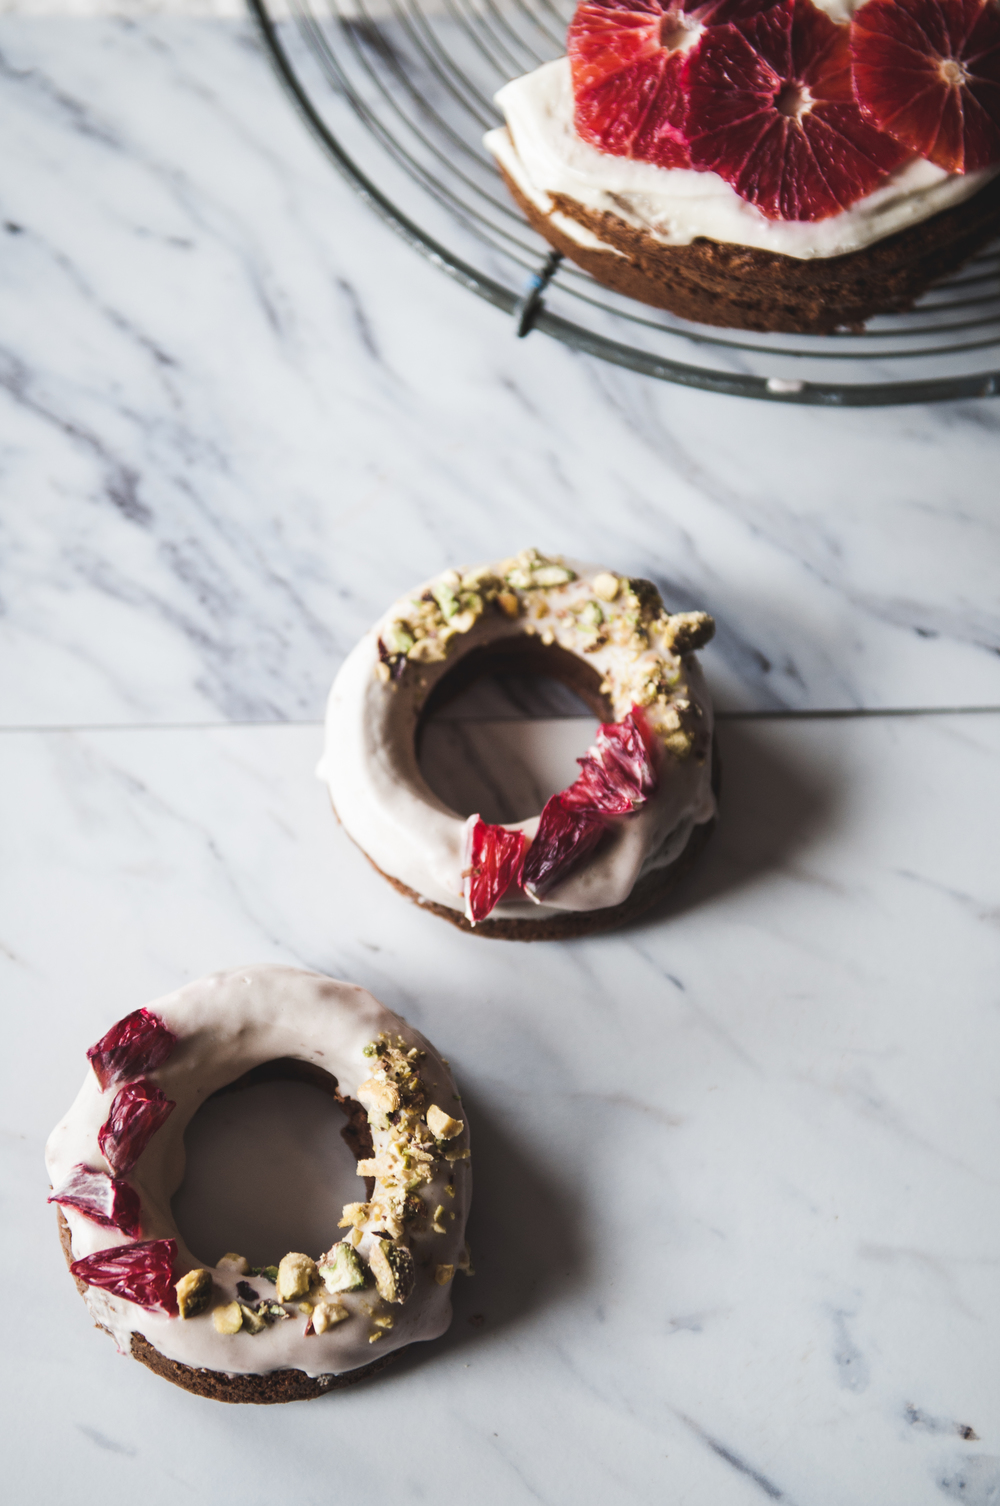 GLUTEN FREE CARROT CAKE DONUTS + BLOOD ORANGE FROSTING